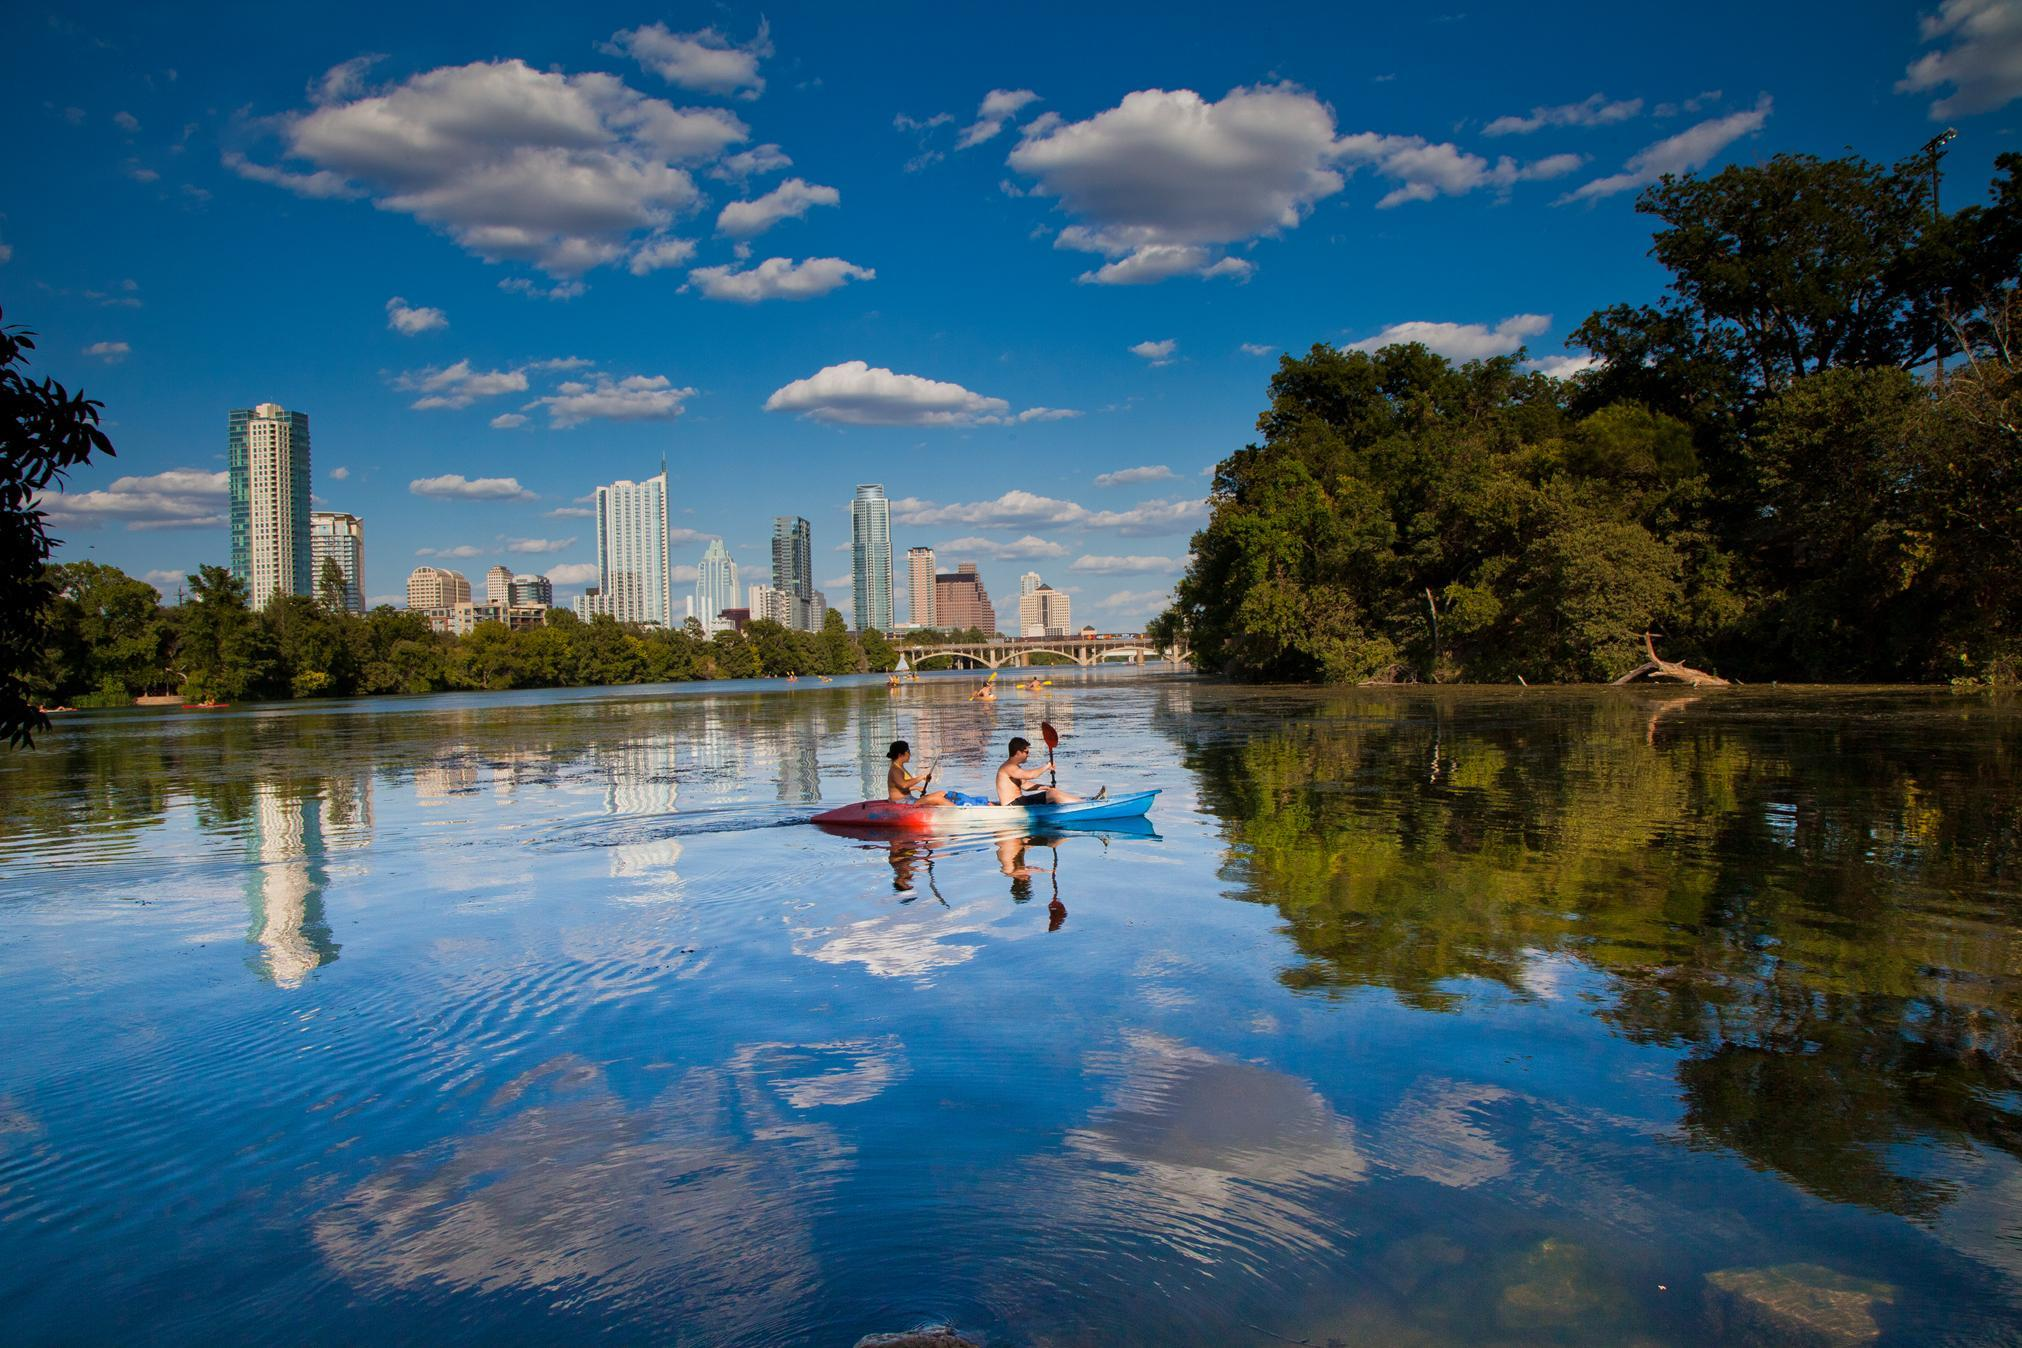 Austin city guide: What to do on a weekend break to the Texas capital